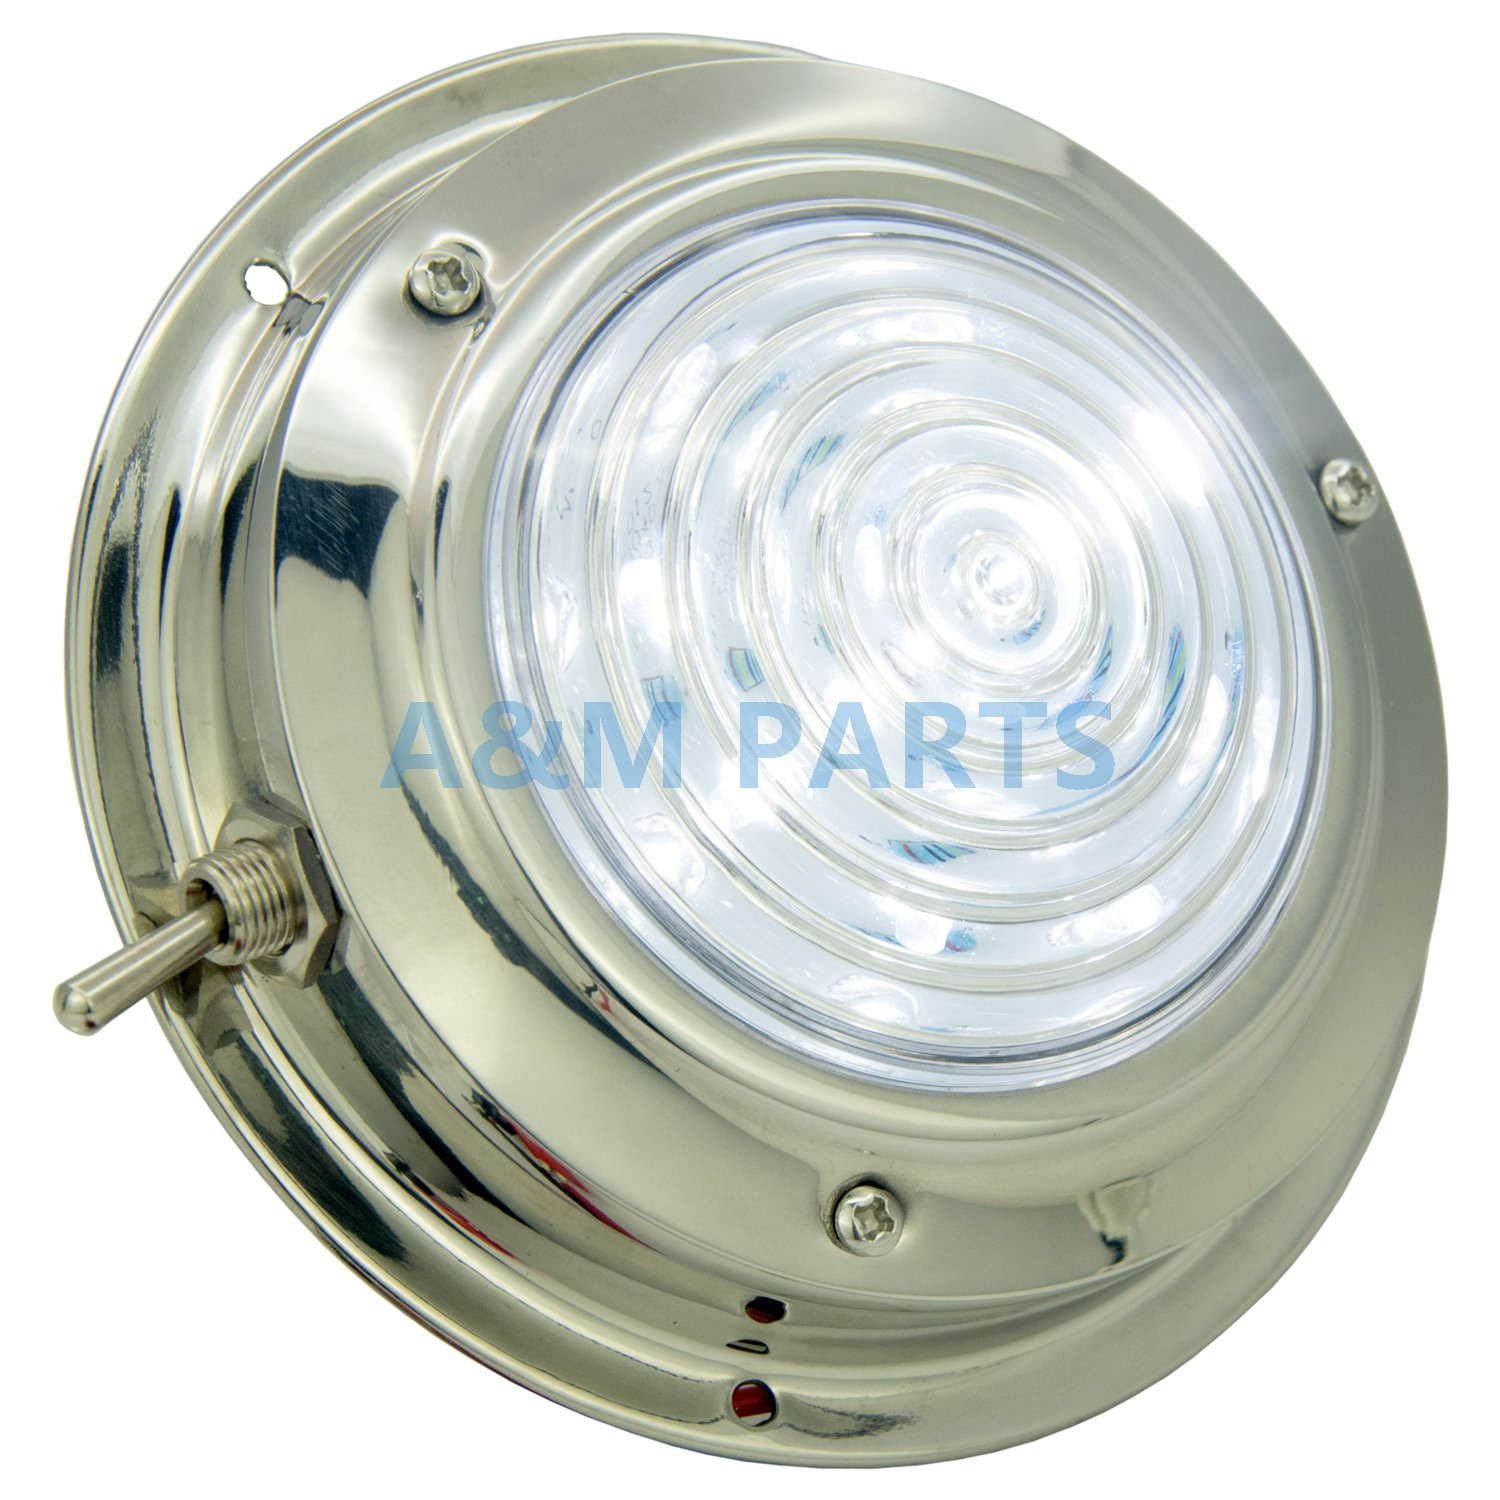 LED Dome Light With Switch 12V Boat Caravan Marine RV Cabin Interior Decorative Lamp Stainless Steel Housing 4.5 inch Cool White цены